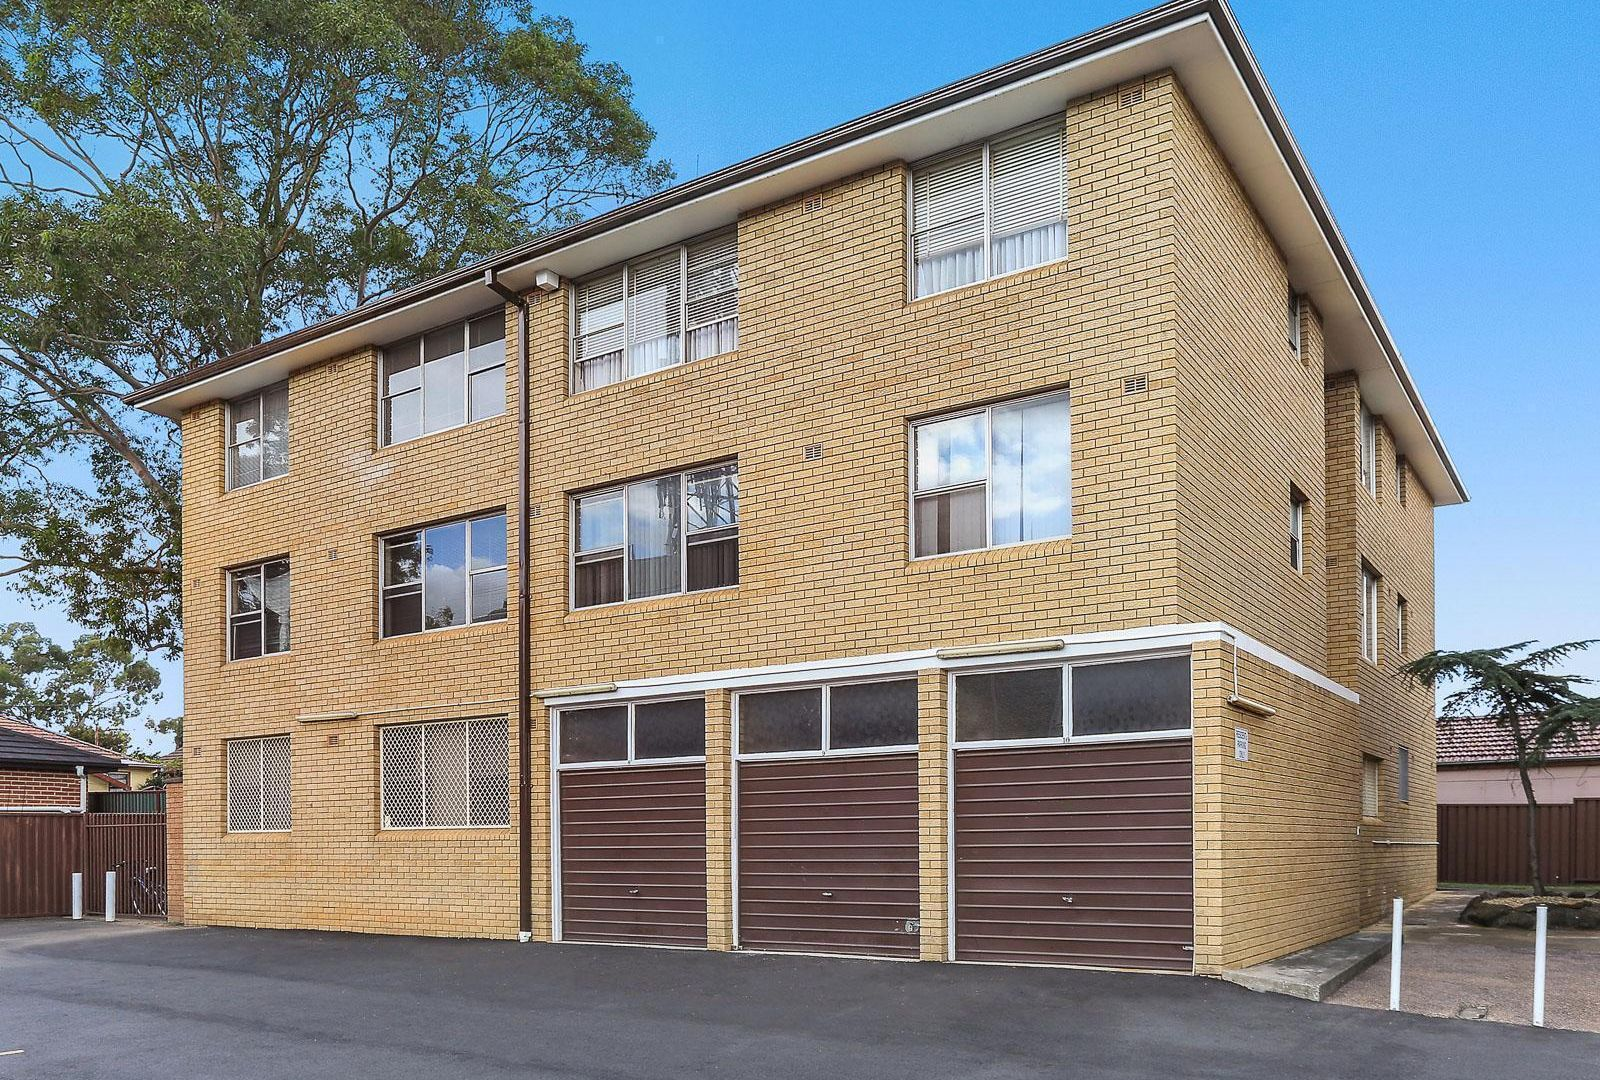 10/6-8 Station Street, Guildford NSW 2161, Image 4